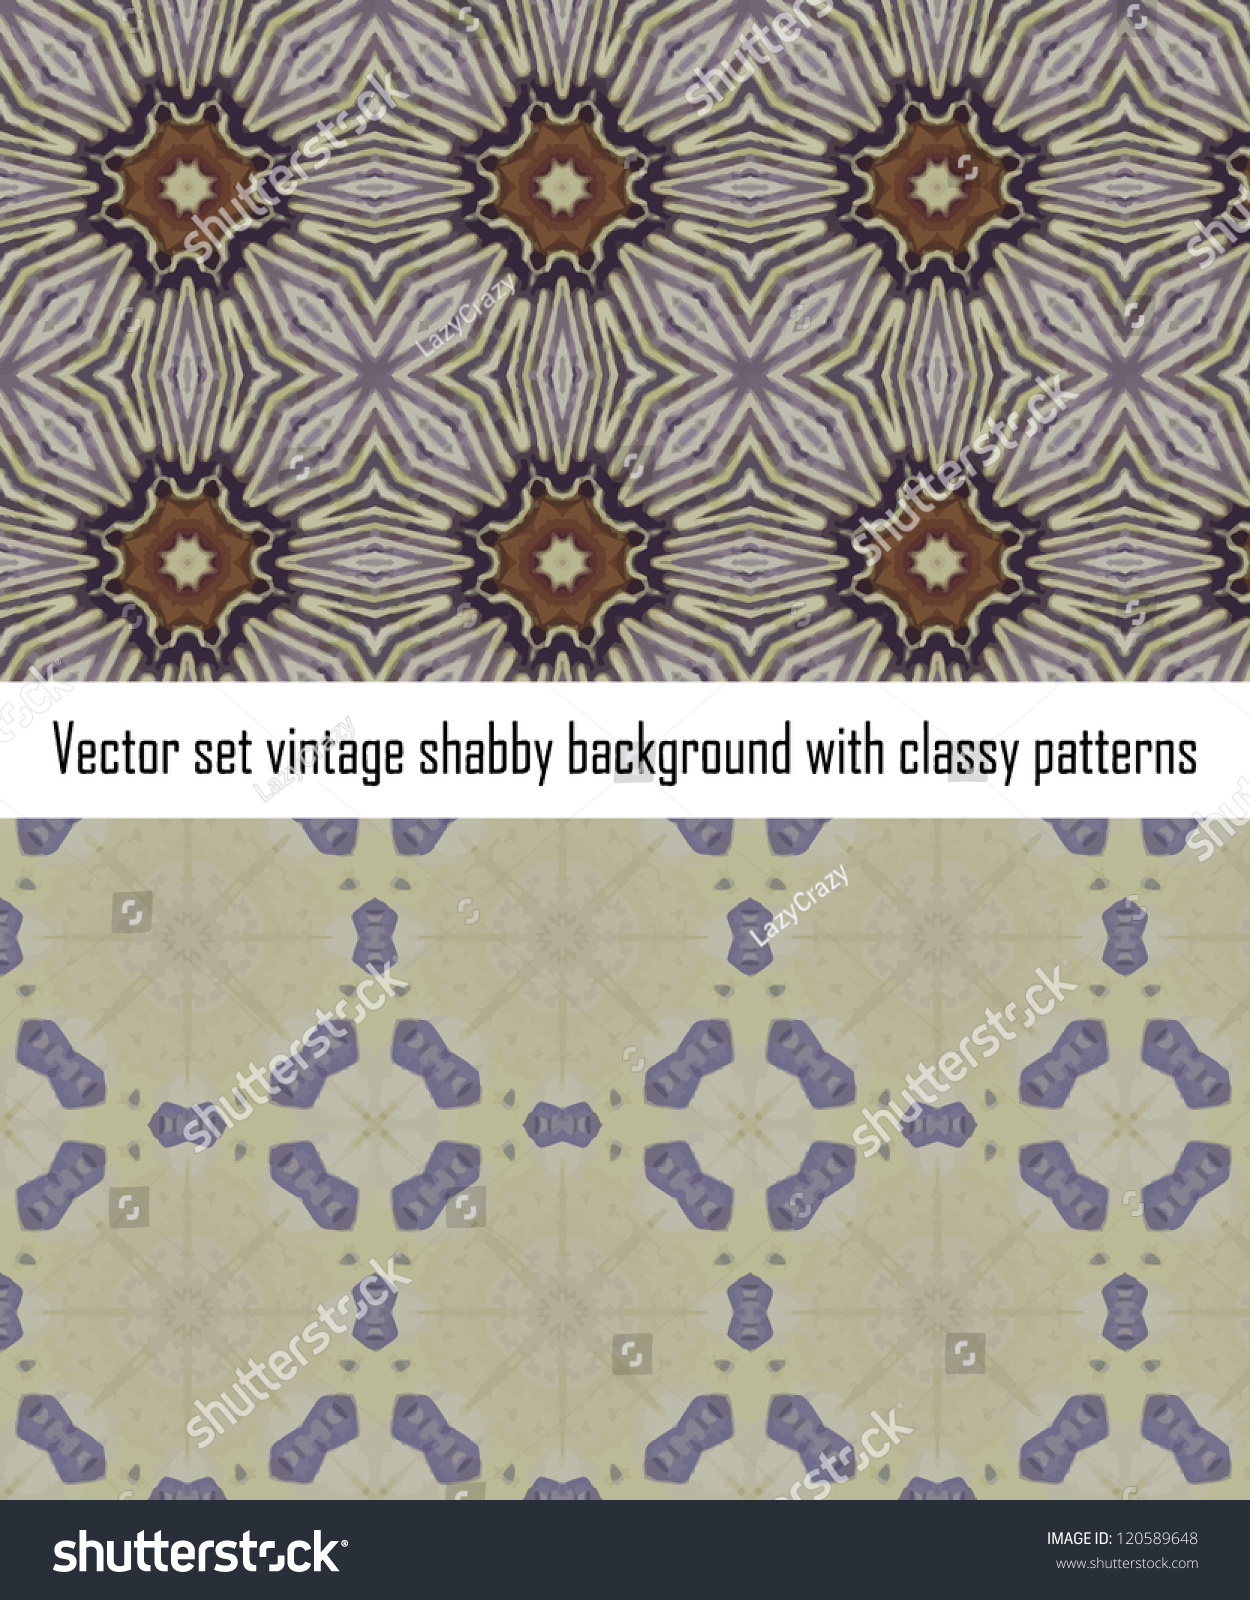 Vintage Shabby Background Classy Patterns Seamless Stock Vector